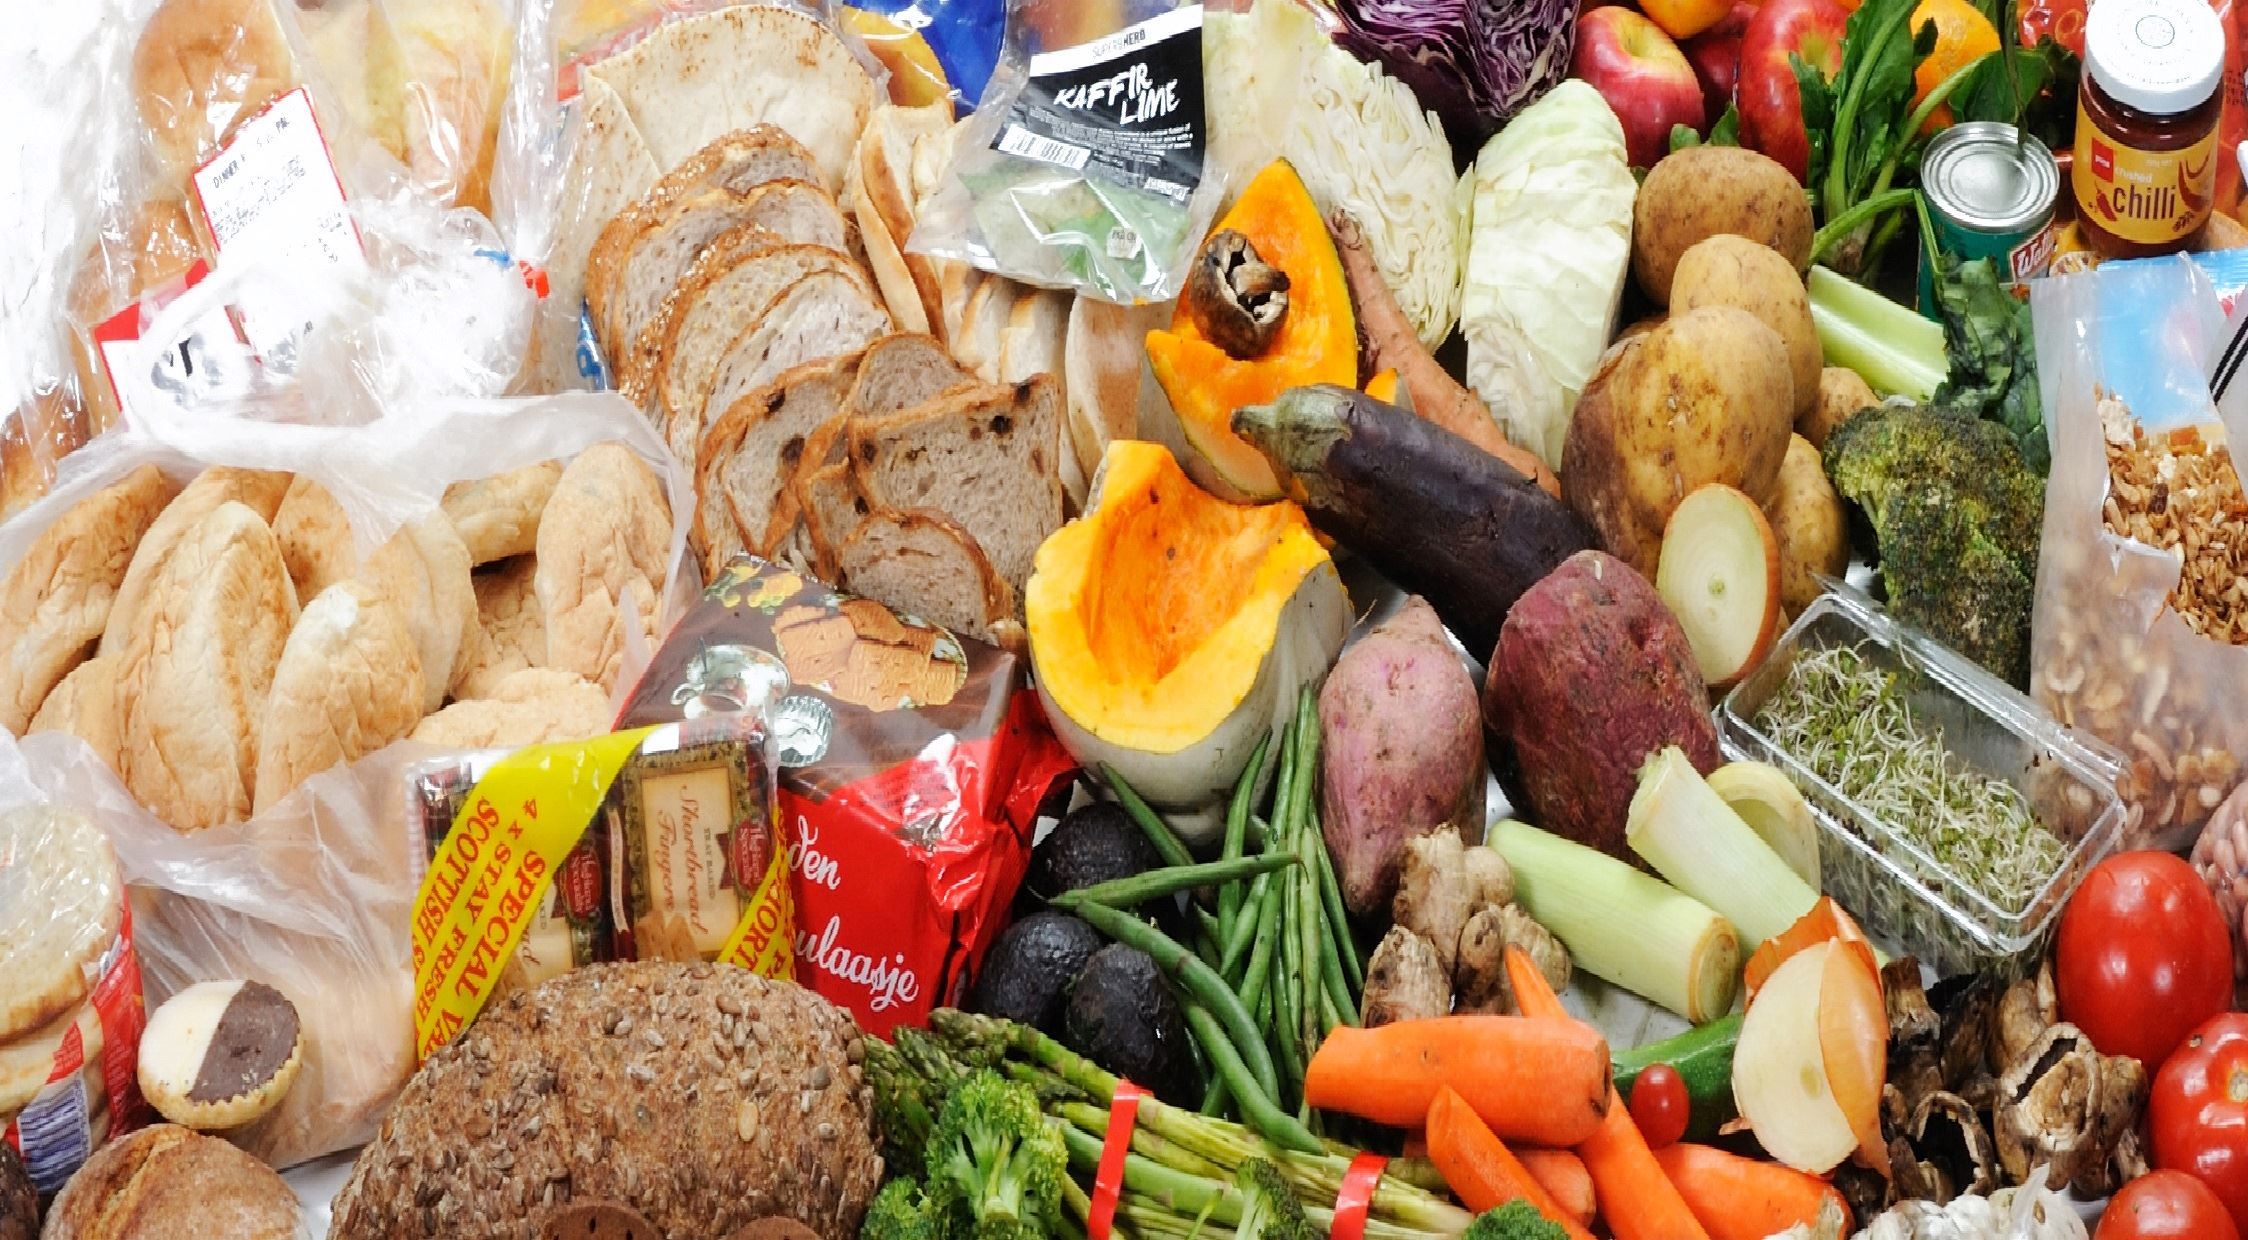 42.4_kg_of_food_found_in_New_Zealand_household_rubbish_bins (1)